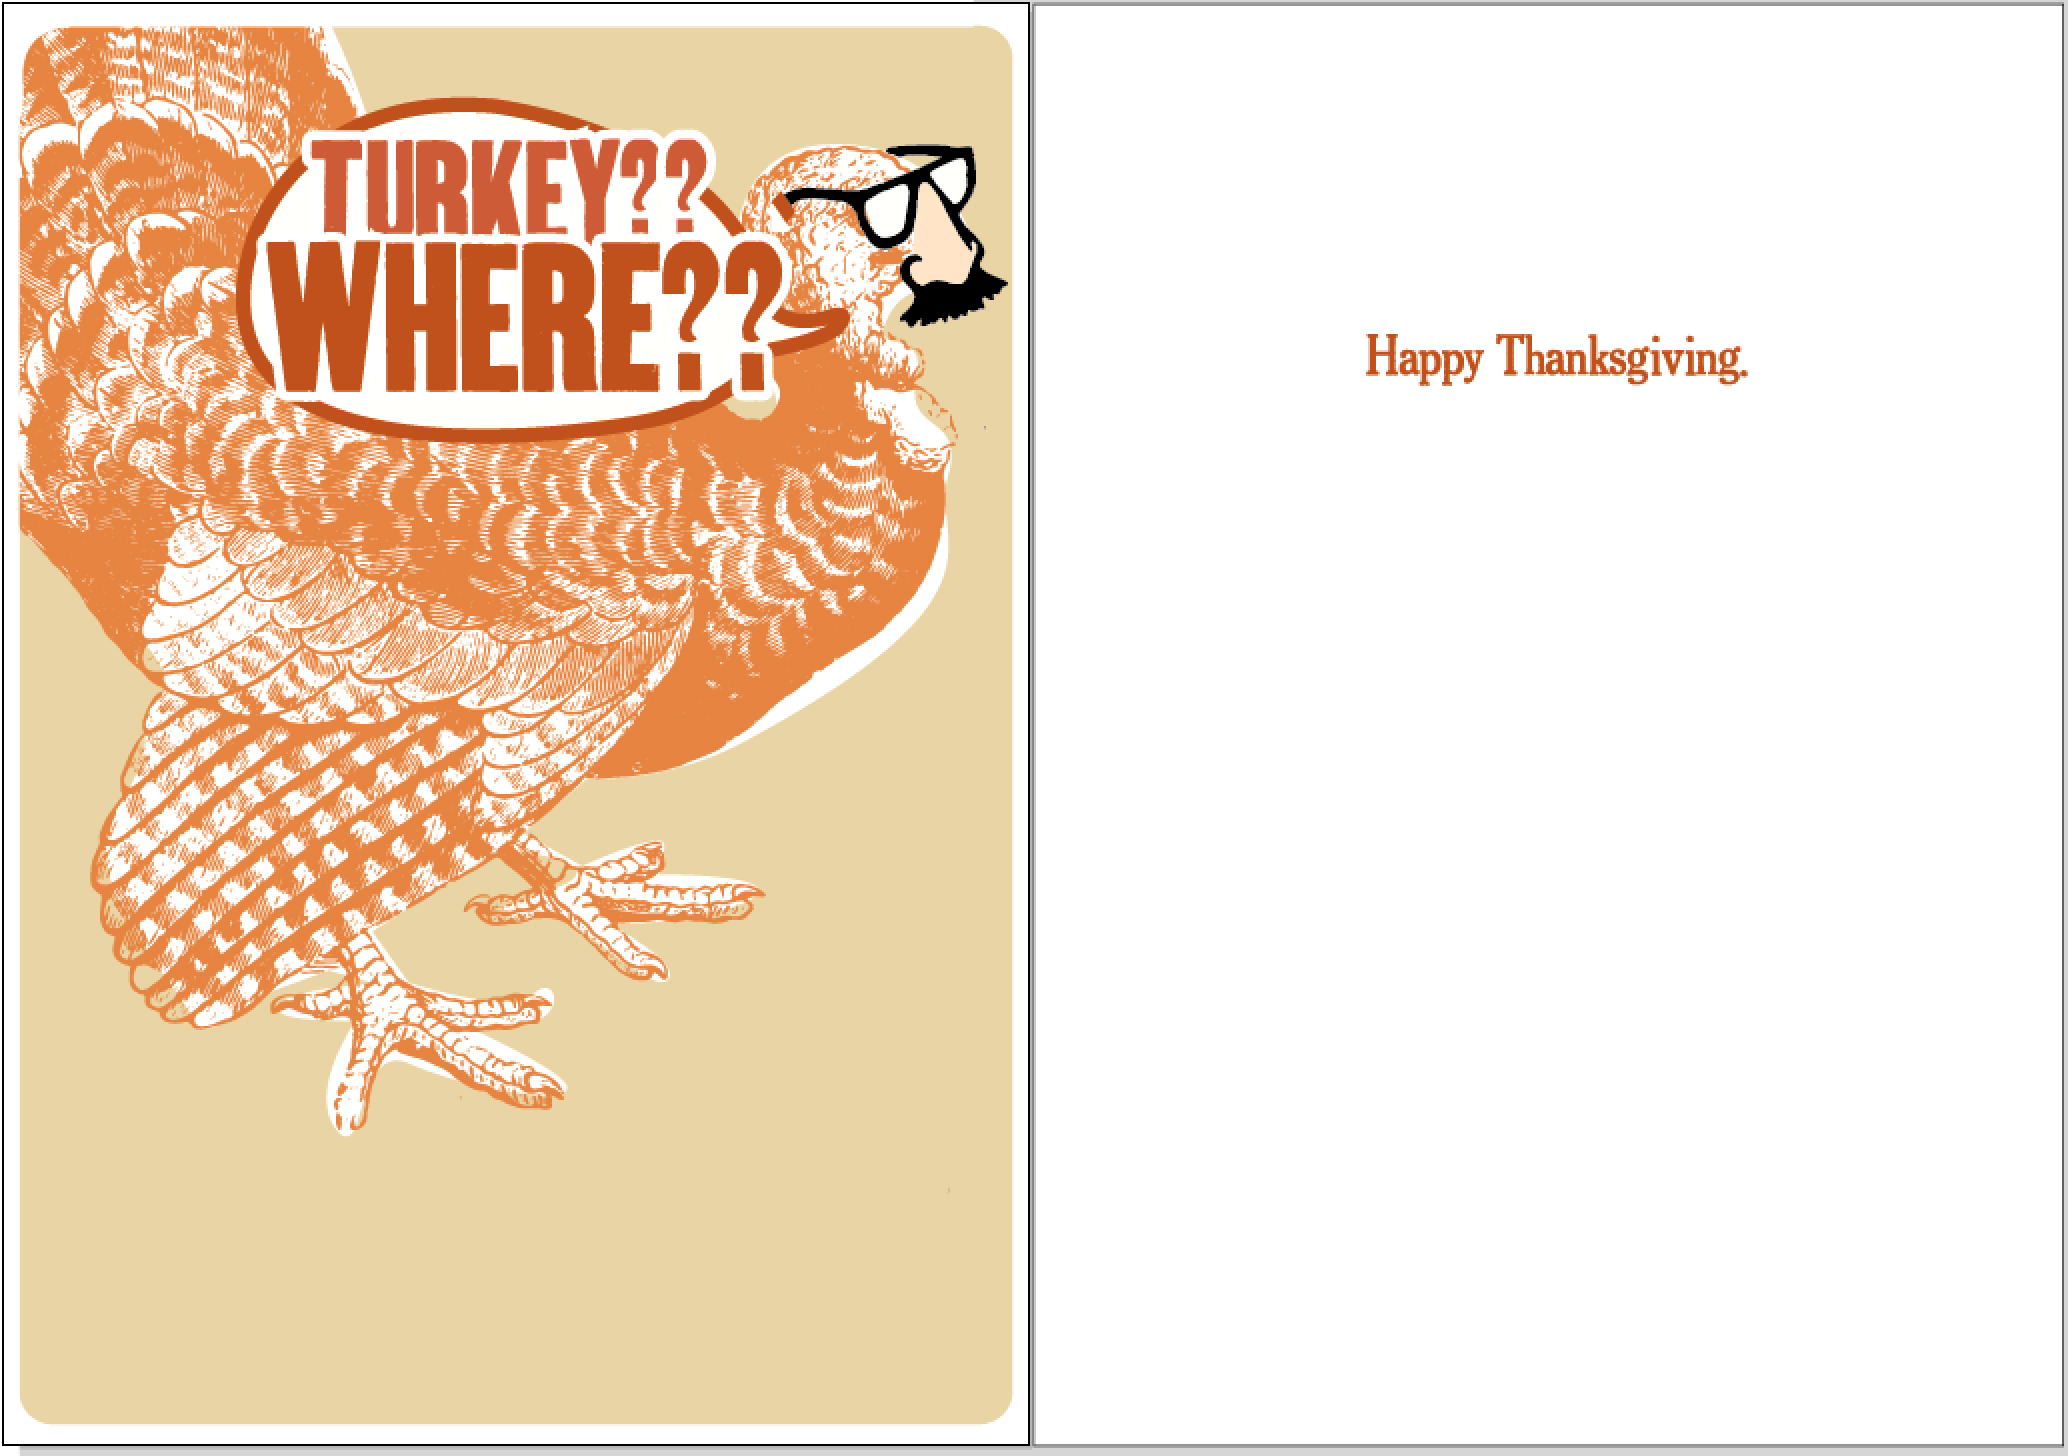 rsvp.revised.turkey where